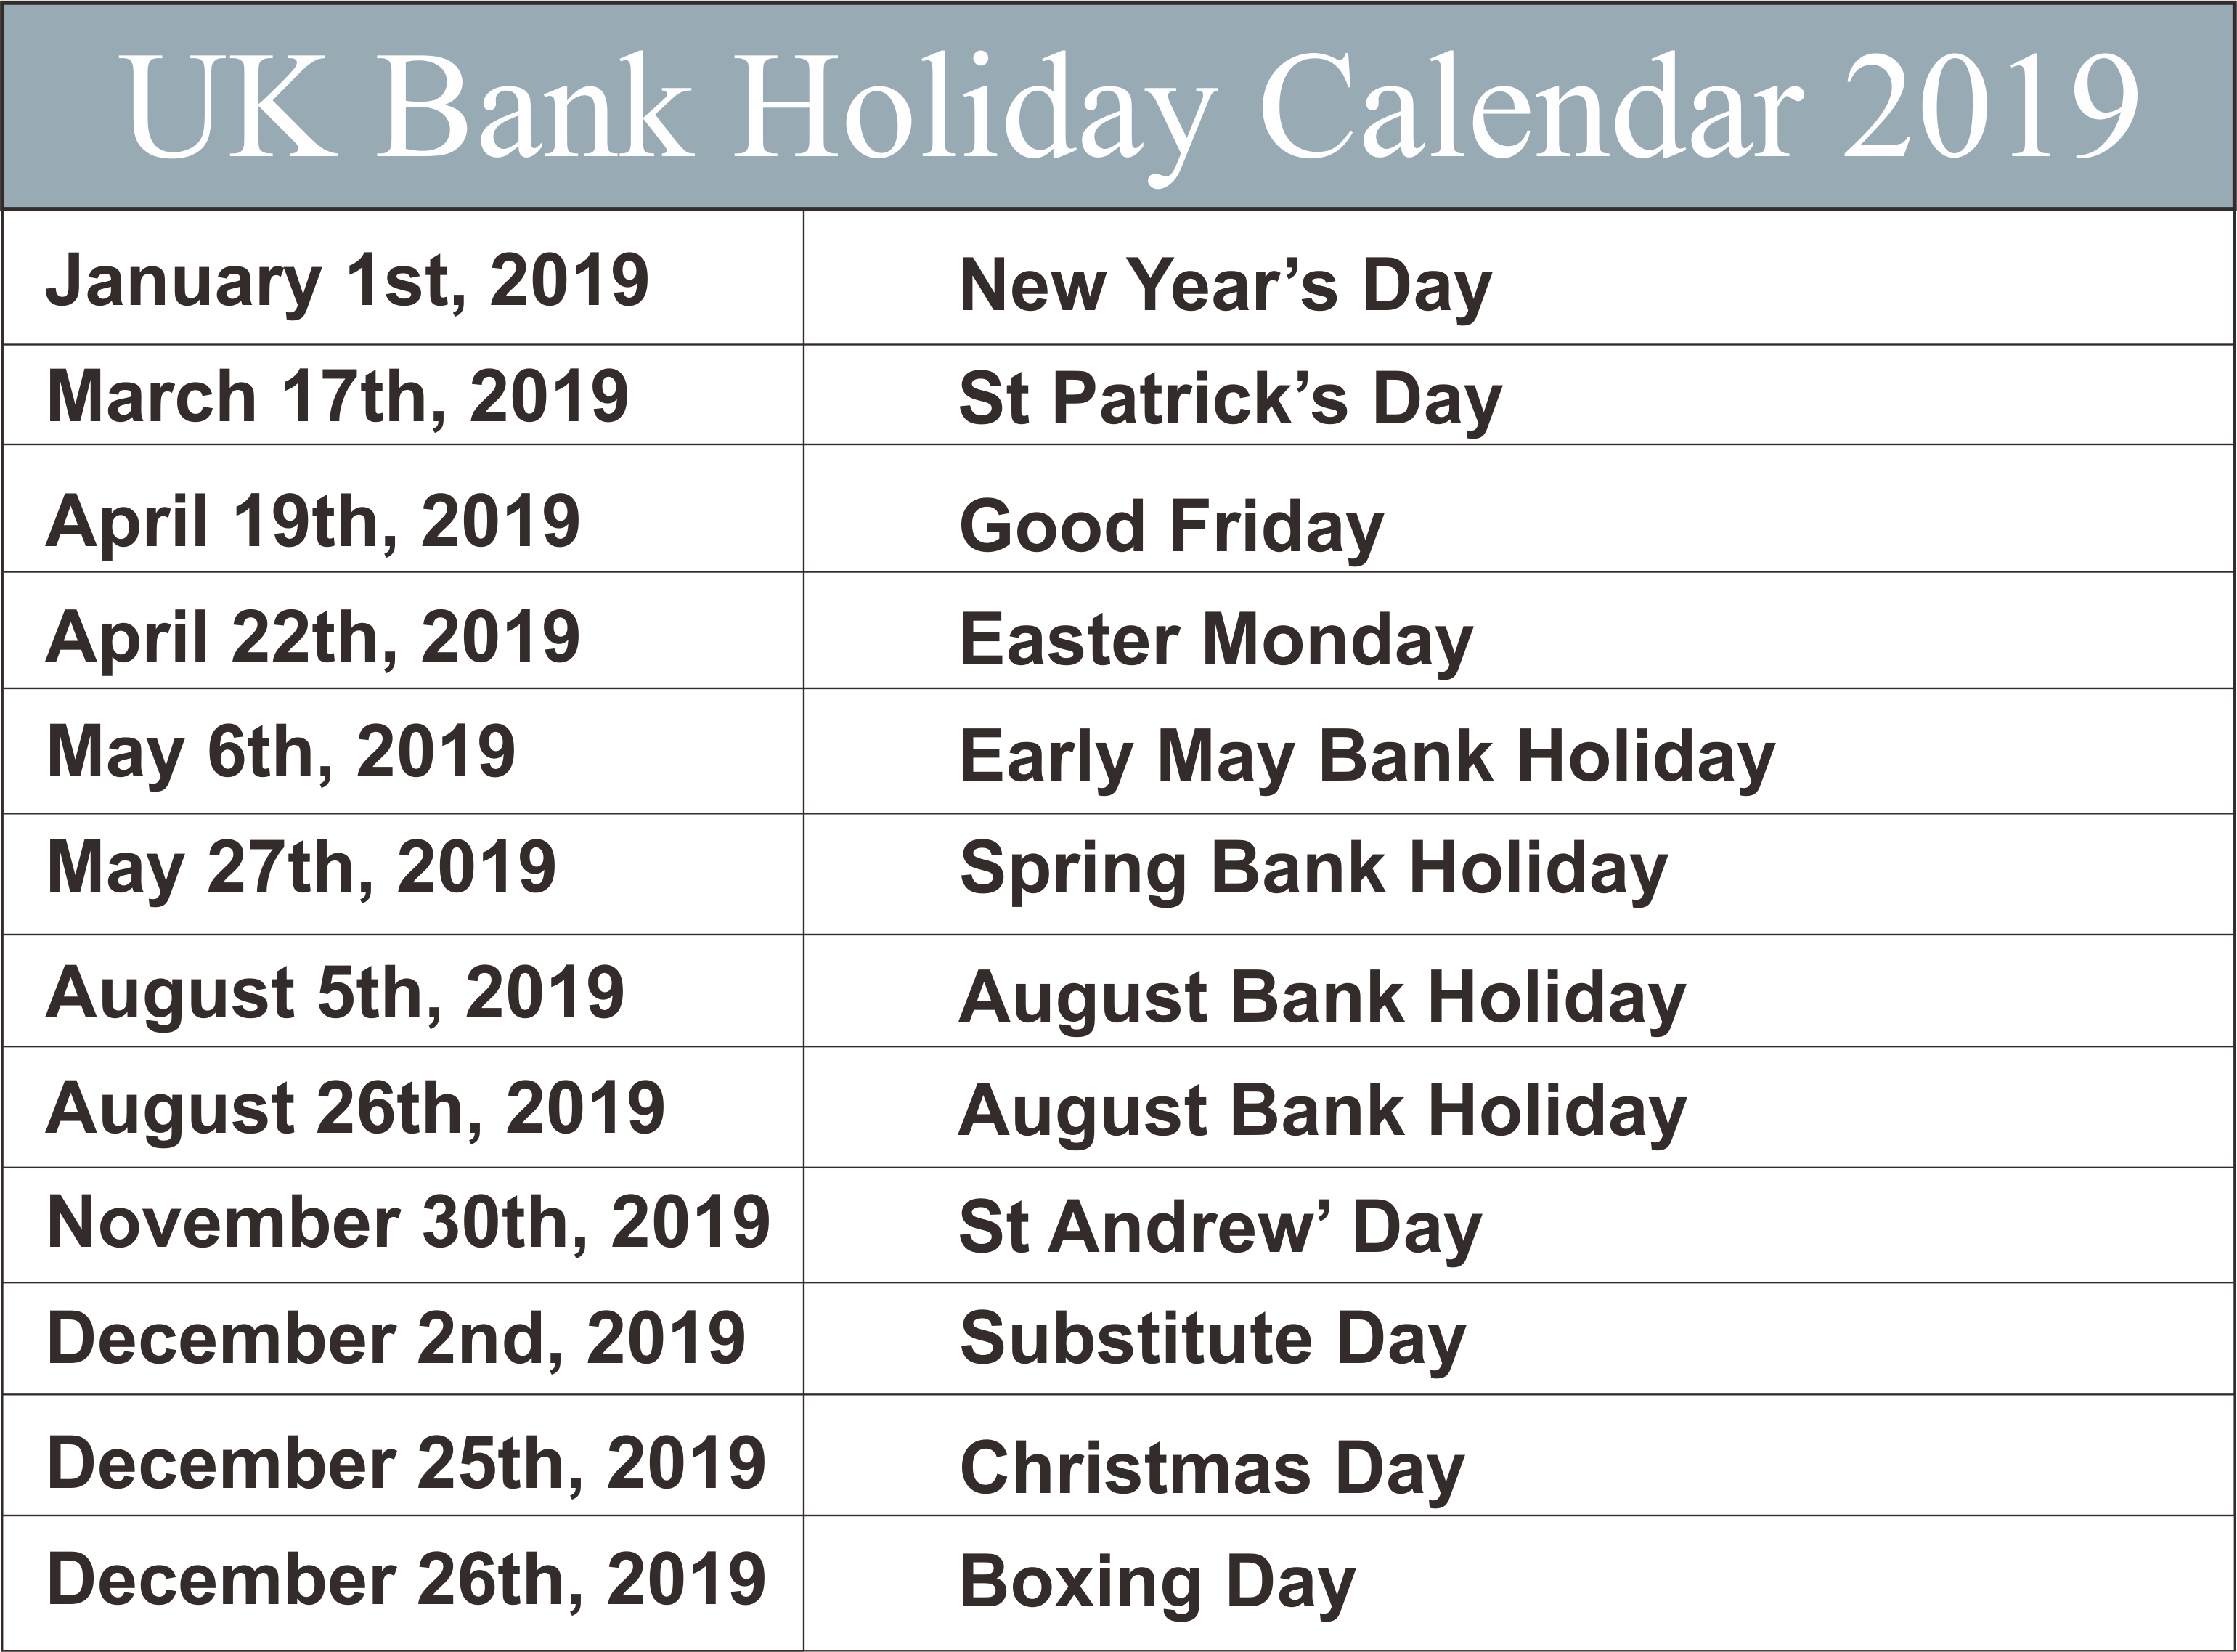 Federal Christmas Holiday 2019 UK Bank Holidays Calendar 2019 | UK FEDERAL HOLIDAYS | 2019